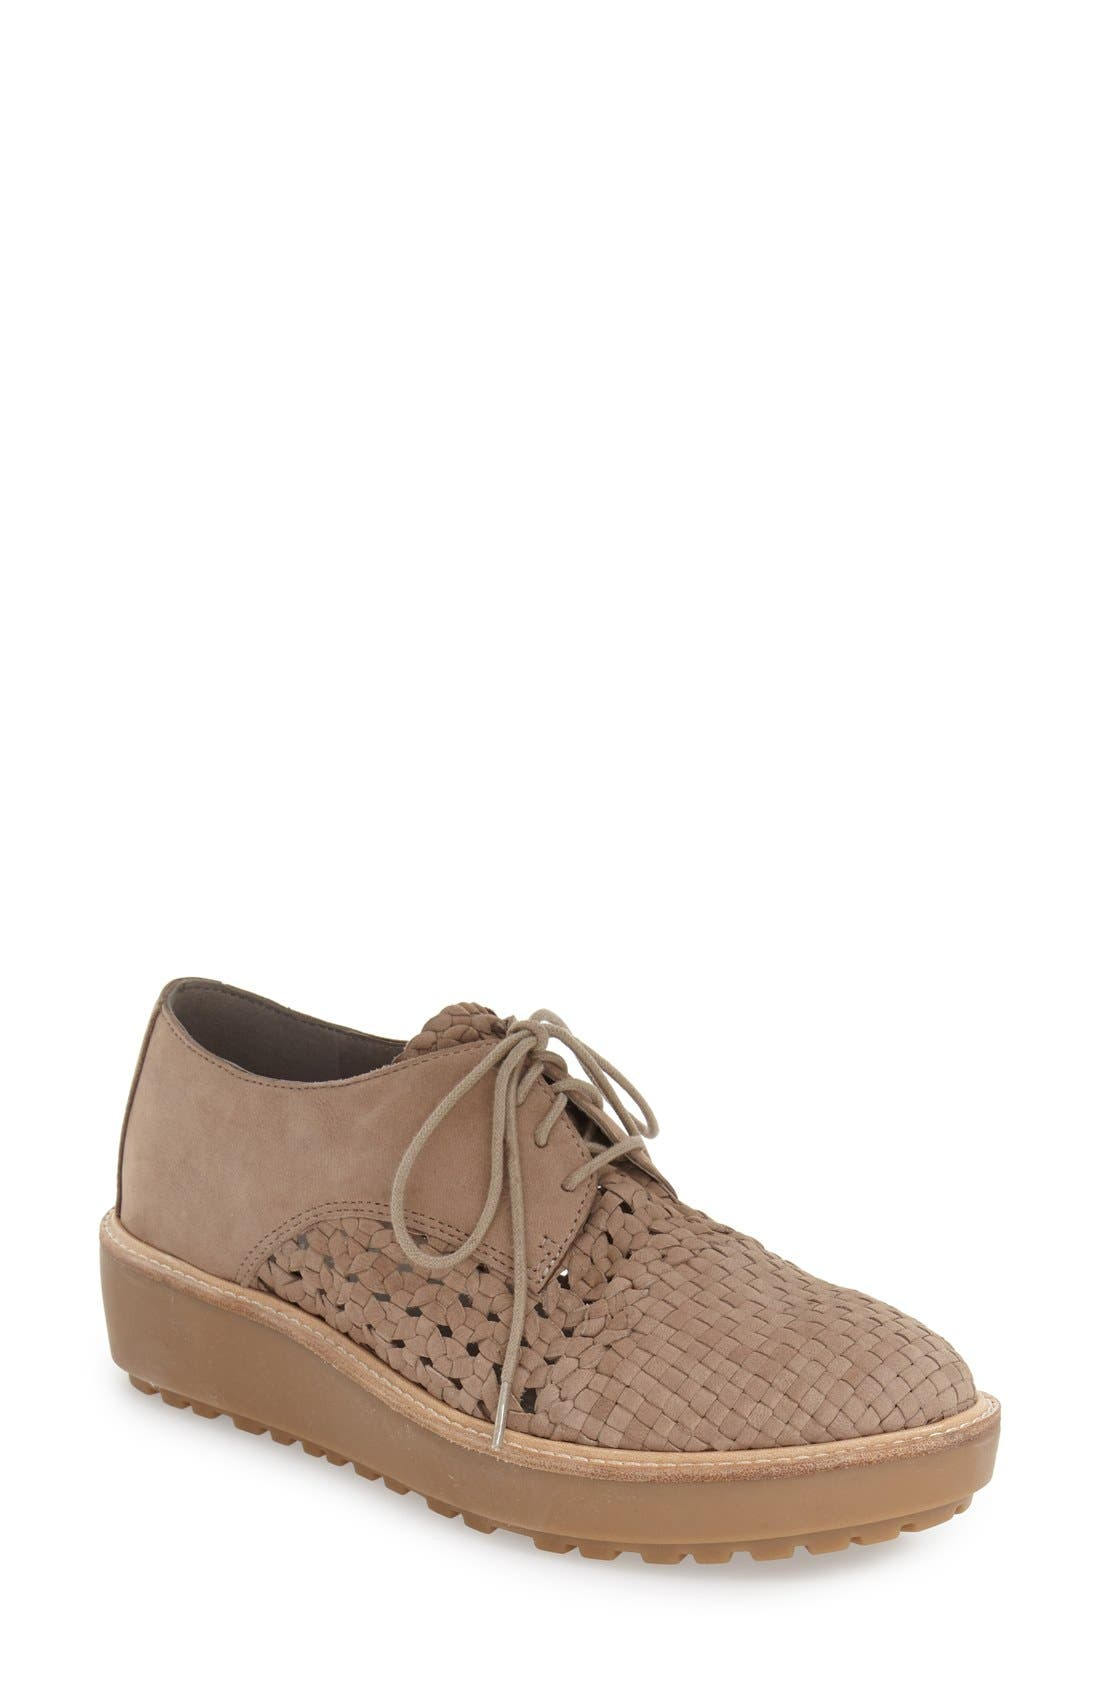 Main Image - Eileen Fisher 'Oath' Platform Oxford (Women)